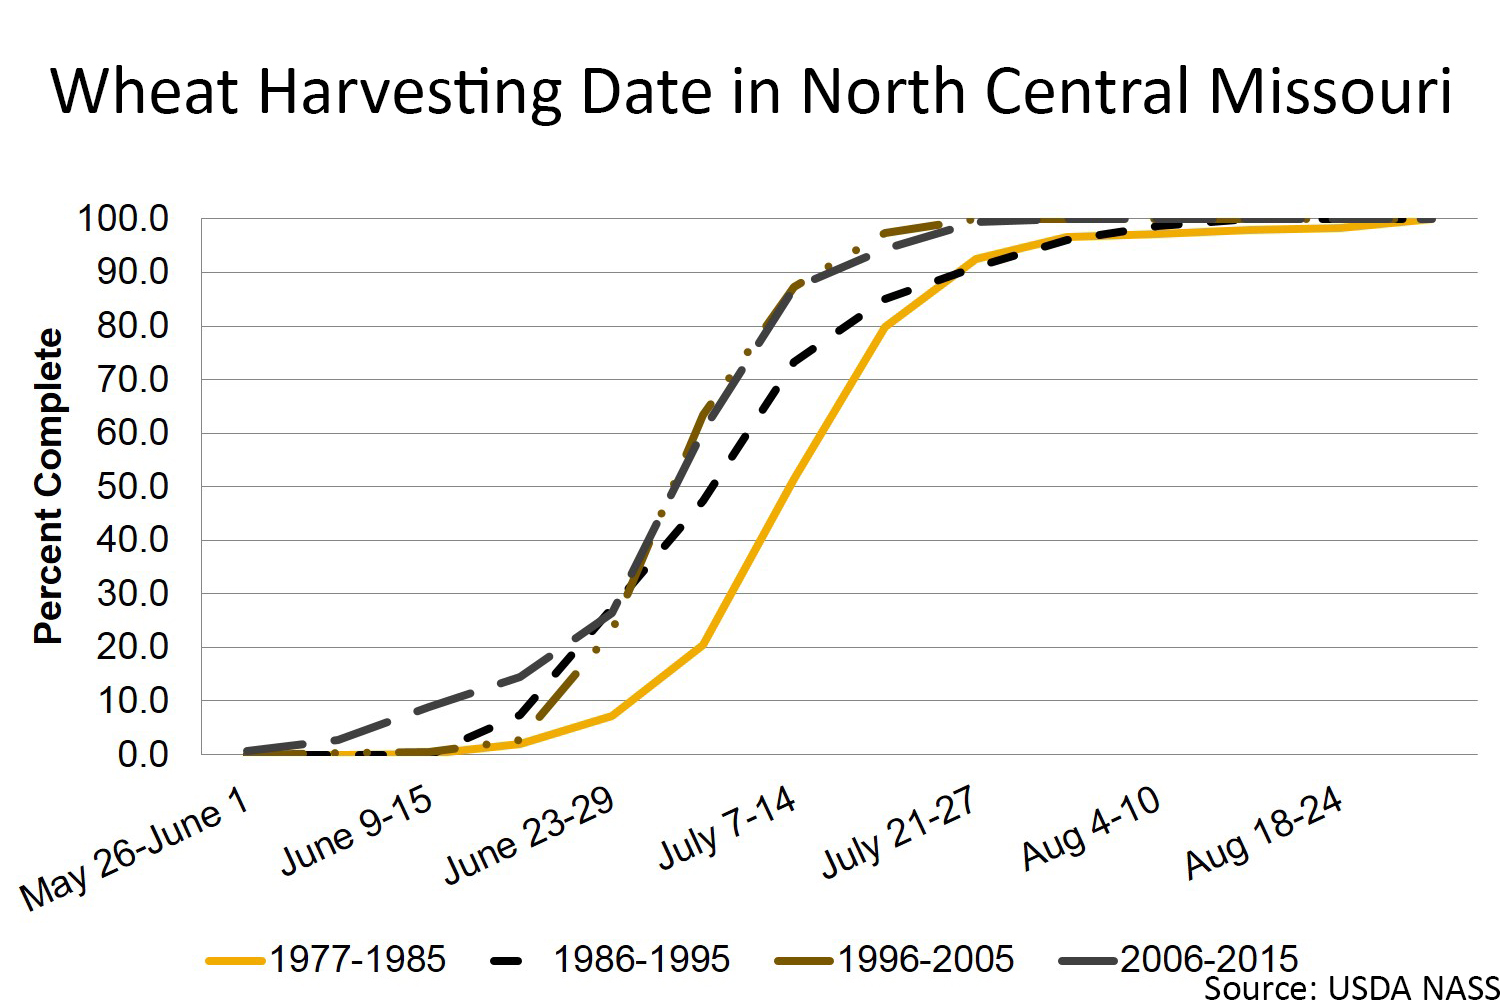 Wheat harvesting date in north central Missouri chart